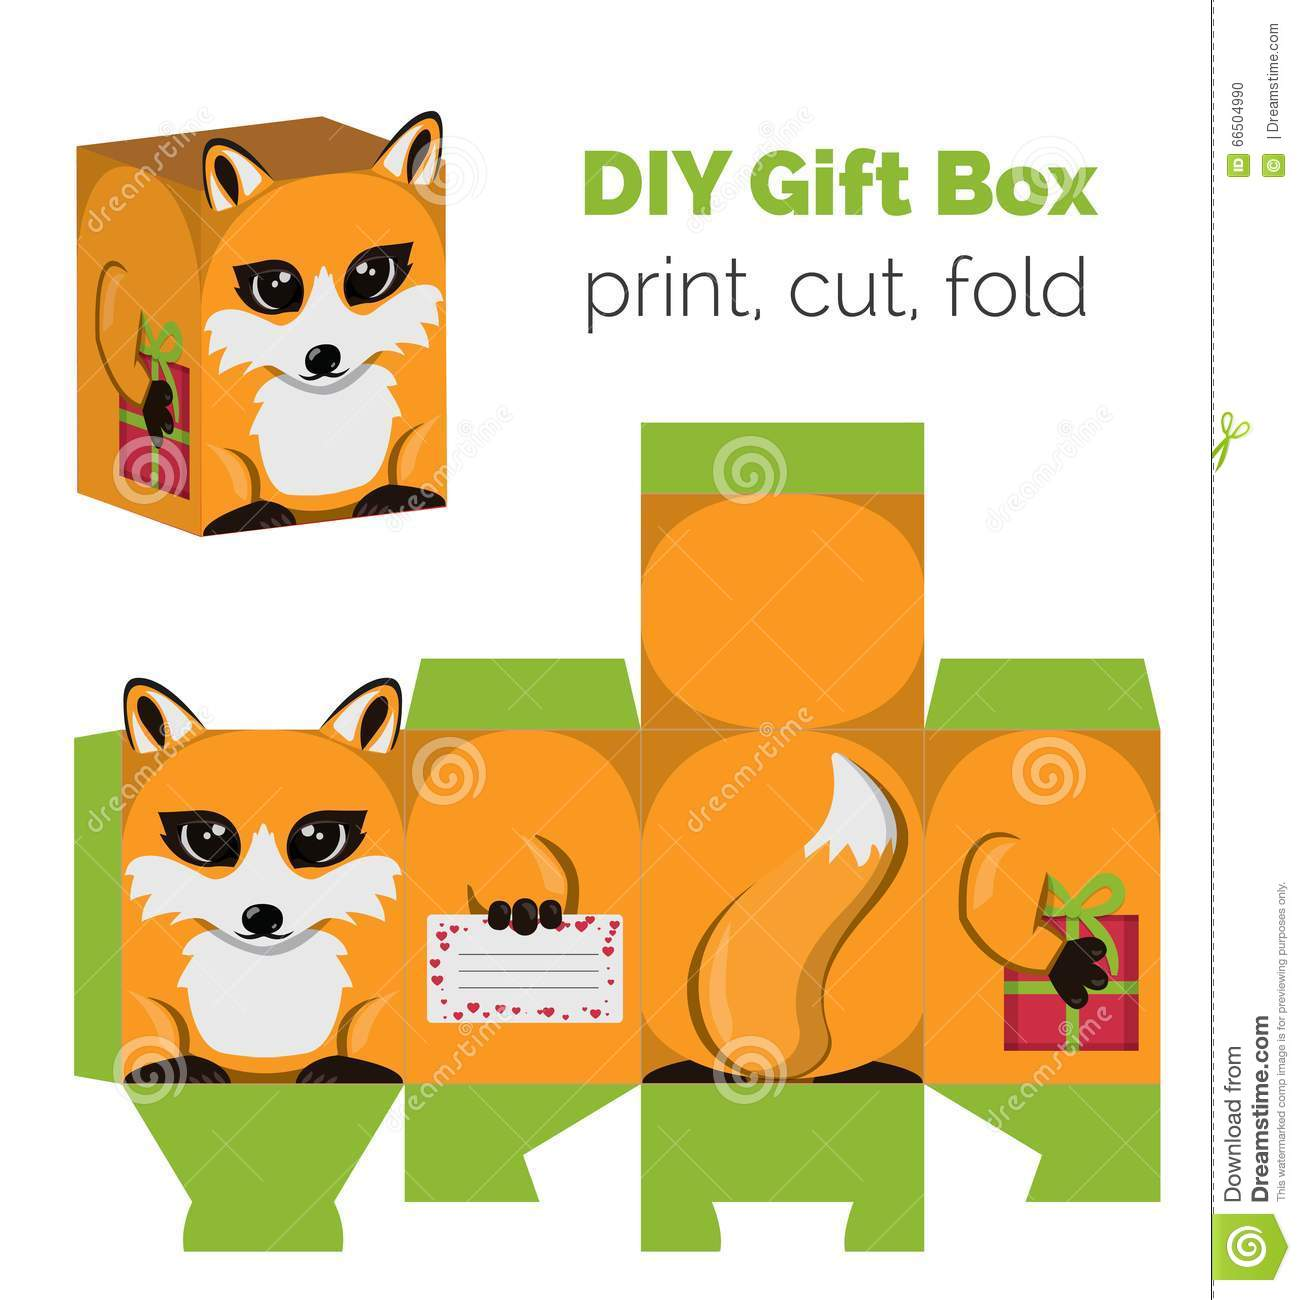 Adorable do it yourself diy fox gift box with ears for sweets adorable do it yourself diy fox gift box with ears for sweets candies small presents printable color scheme print it on thick paper cut out solutioingenieria Gallery